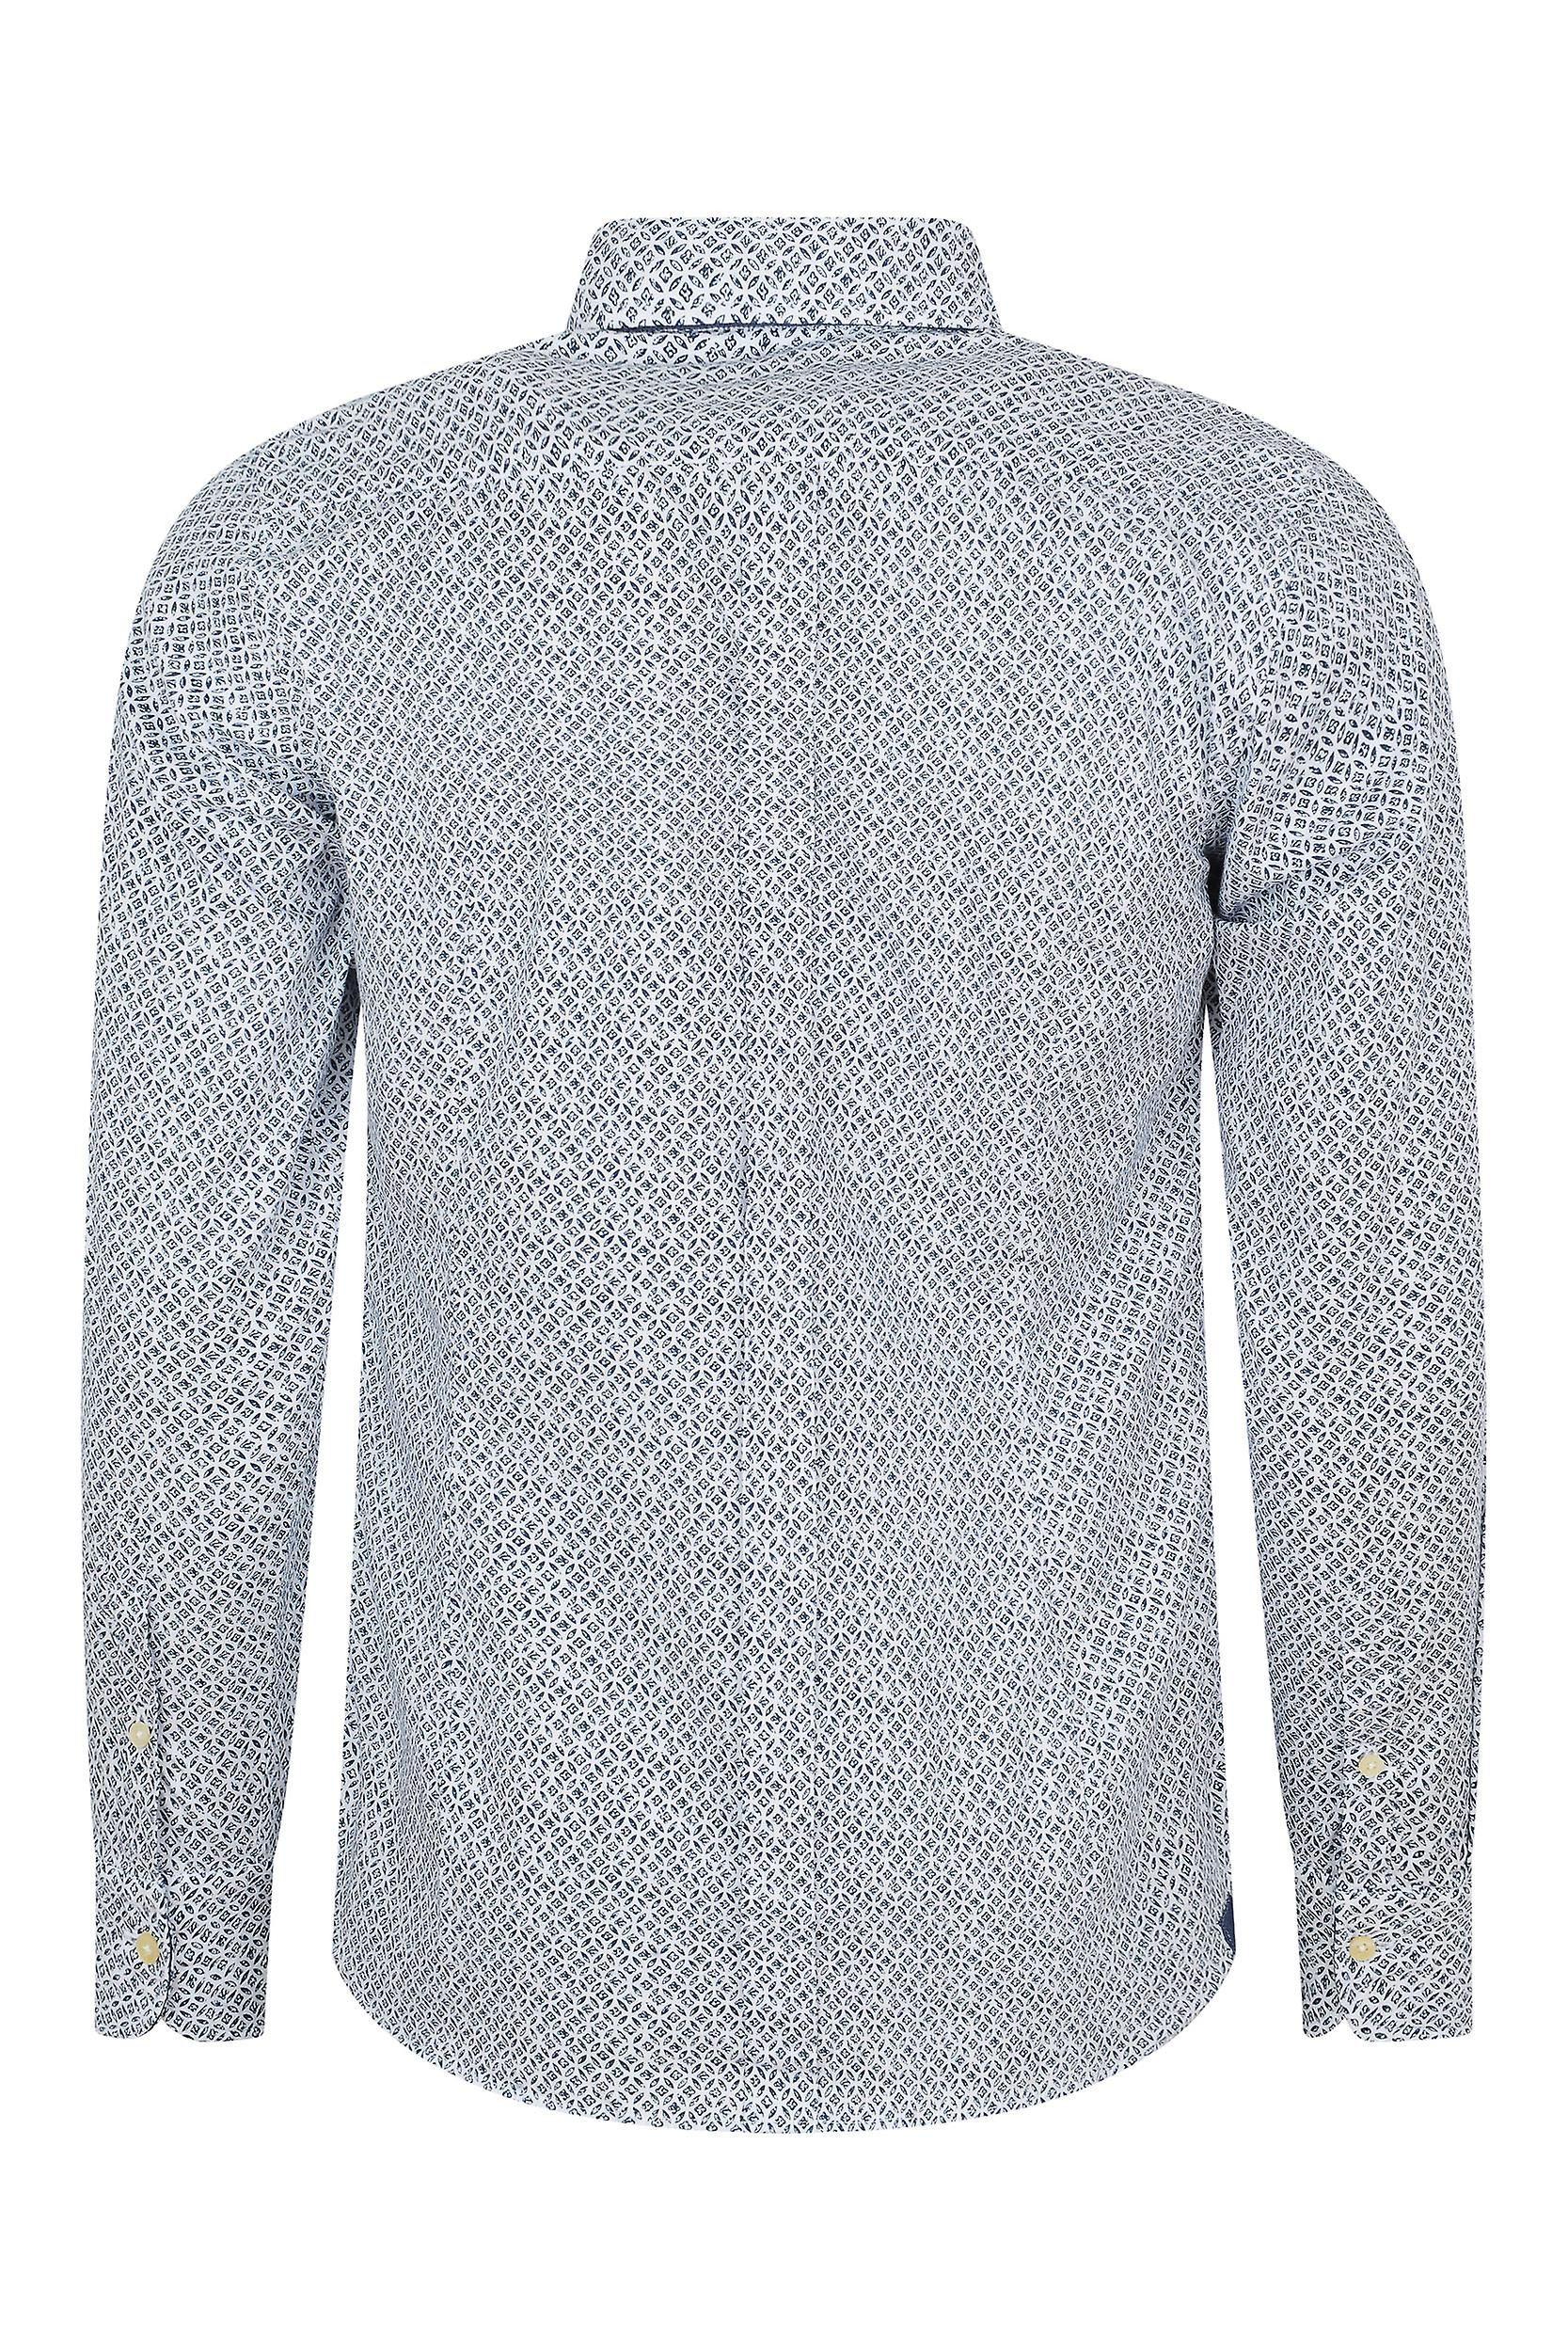 Fabio Giovanni Carlantino Shirt - Printed with a stamped floral pattern - High Quality Italian Shirt